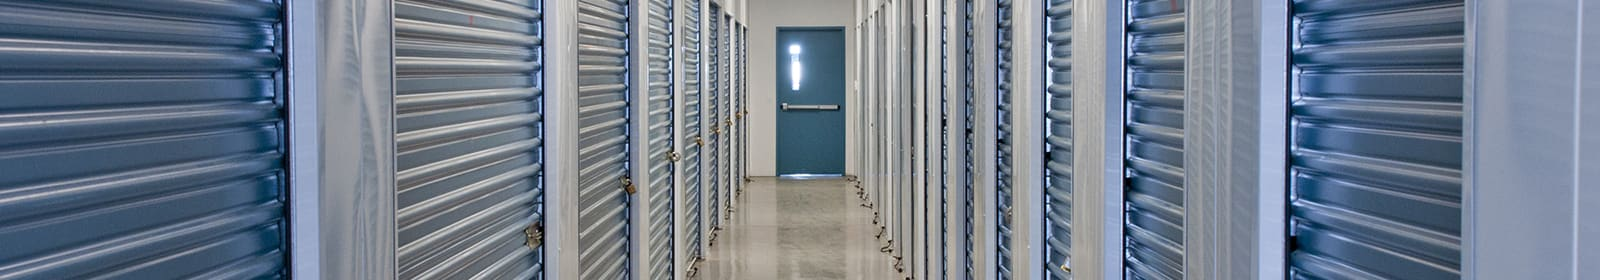 Meadowbrook Self Storage units and pricing in St. Louis Park, MN.